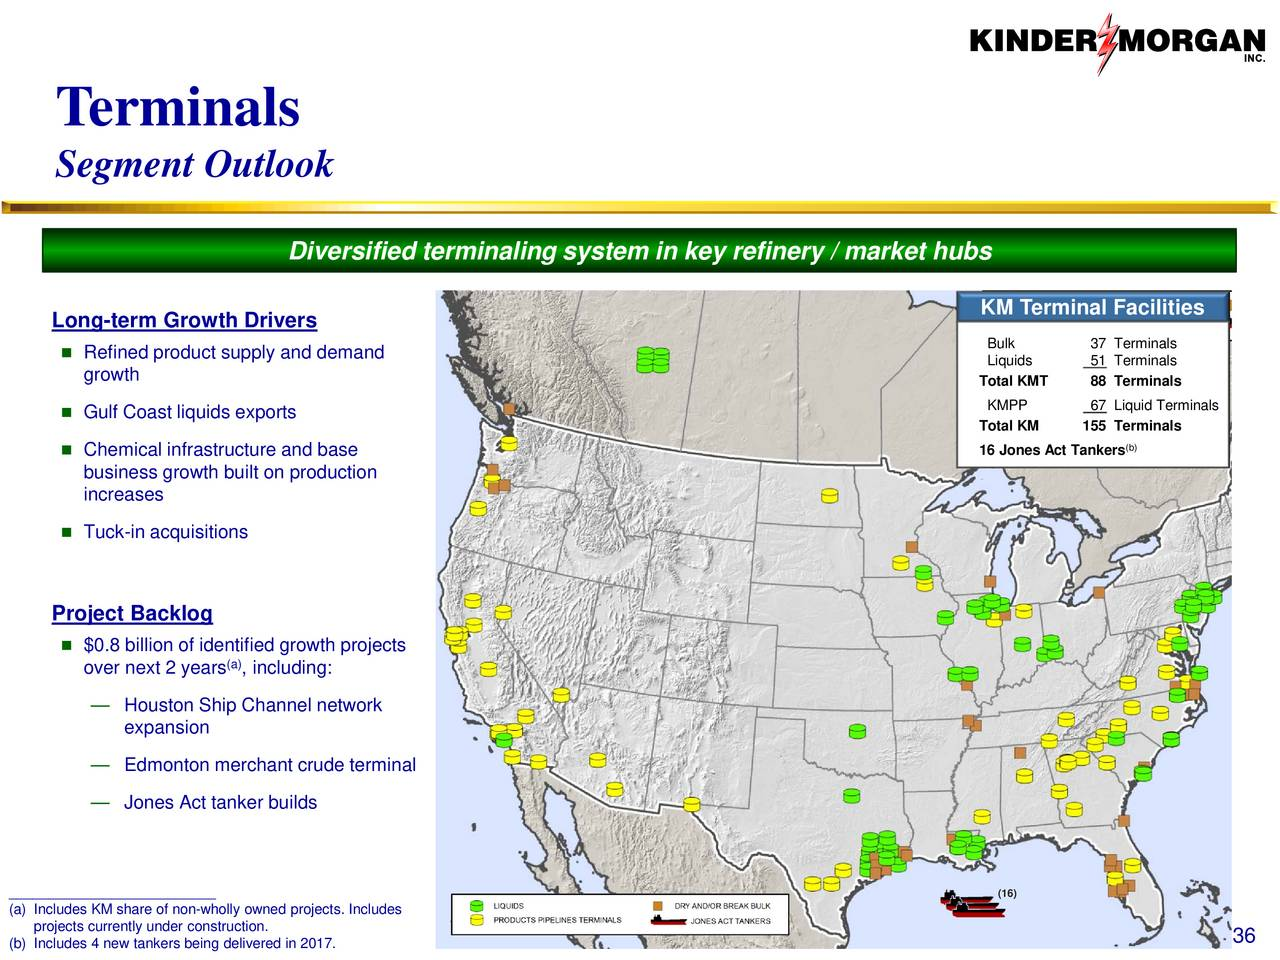 Kinder Morgan Stock Quote Stock Quote Kinder Morgan.kinder Morgan Stock Quote Captivating